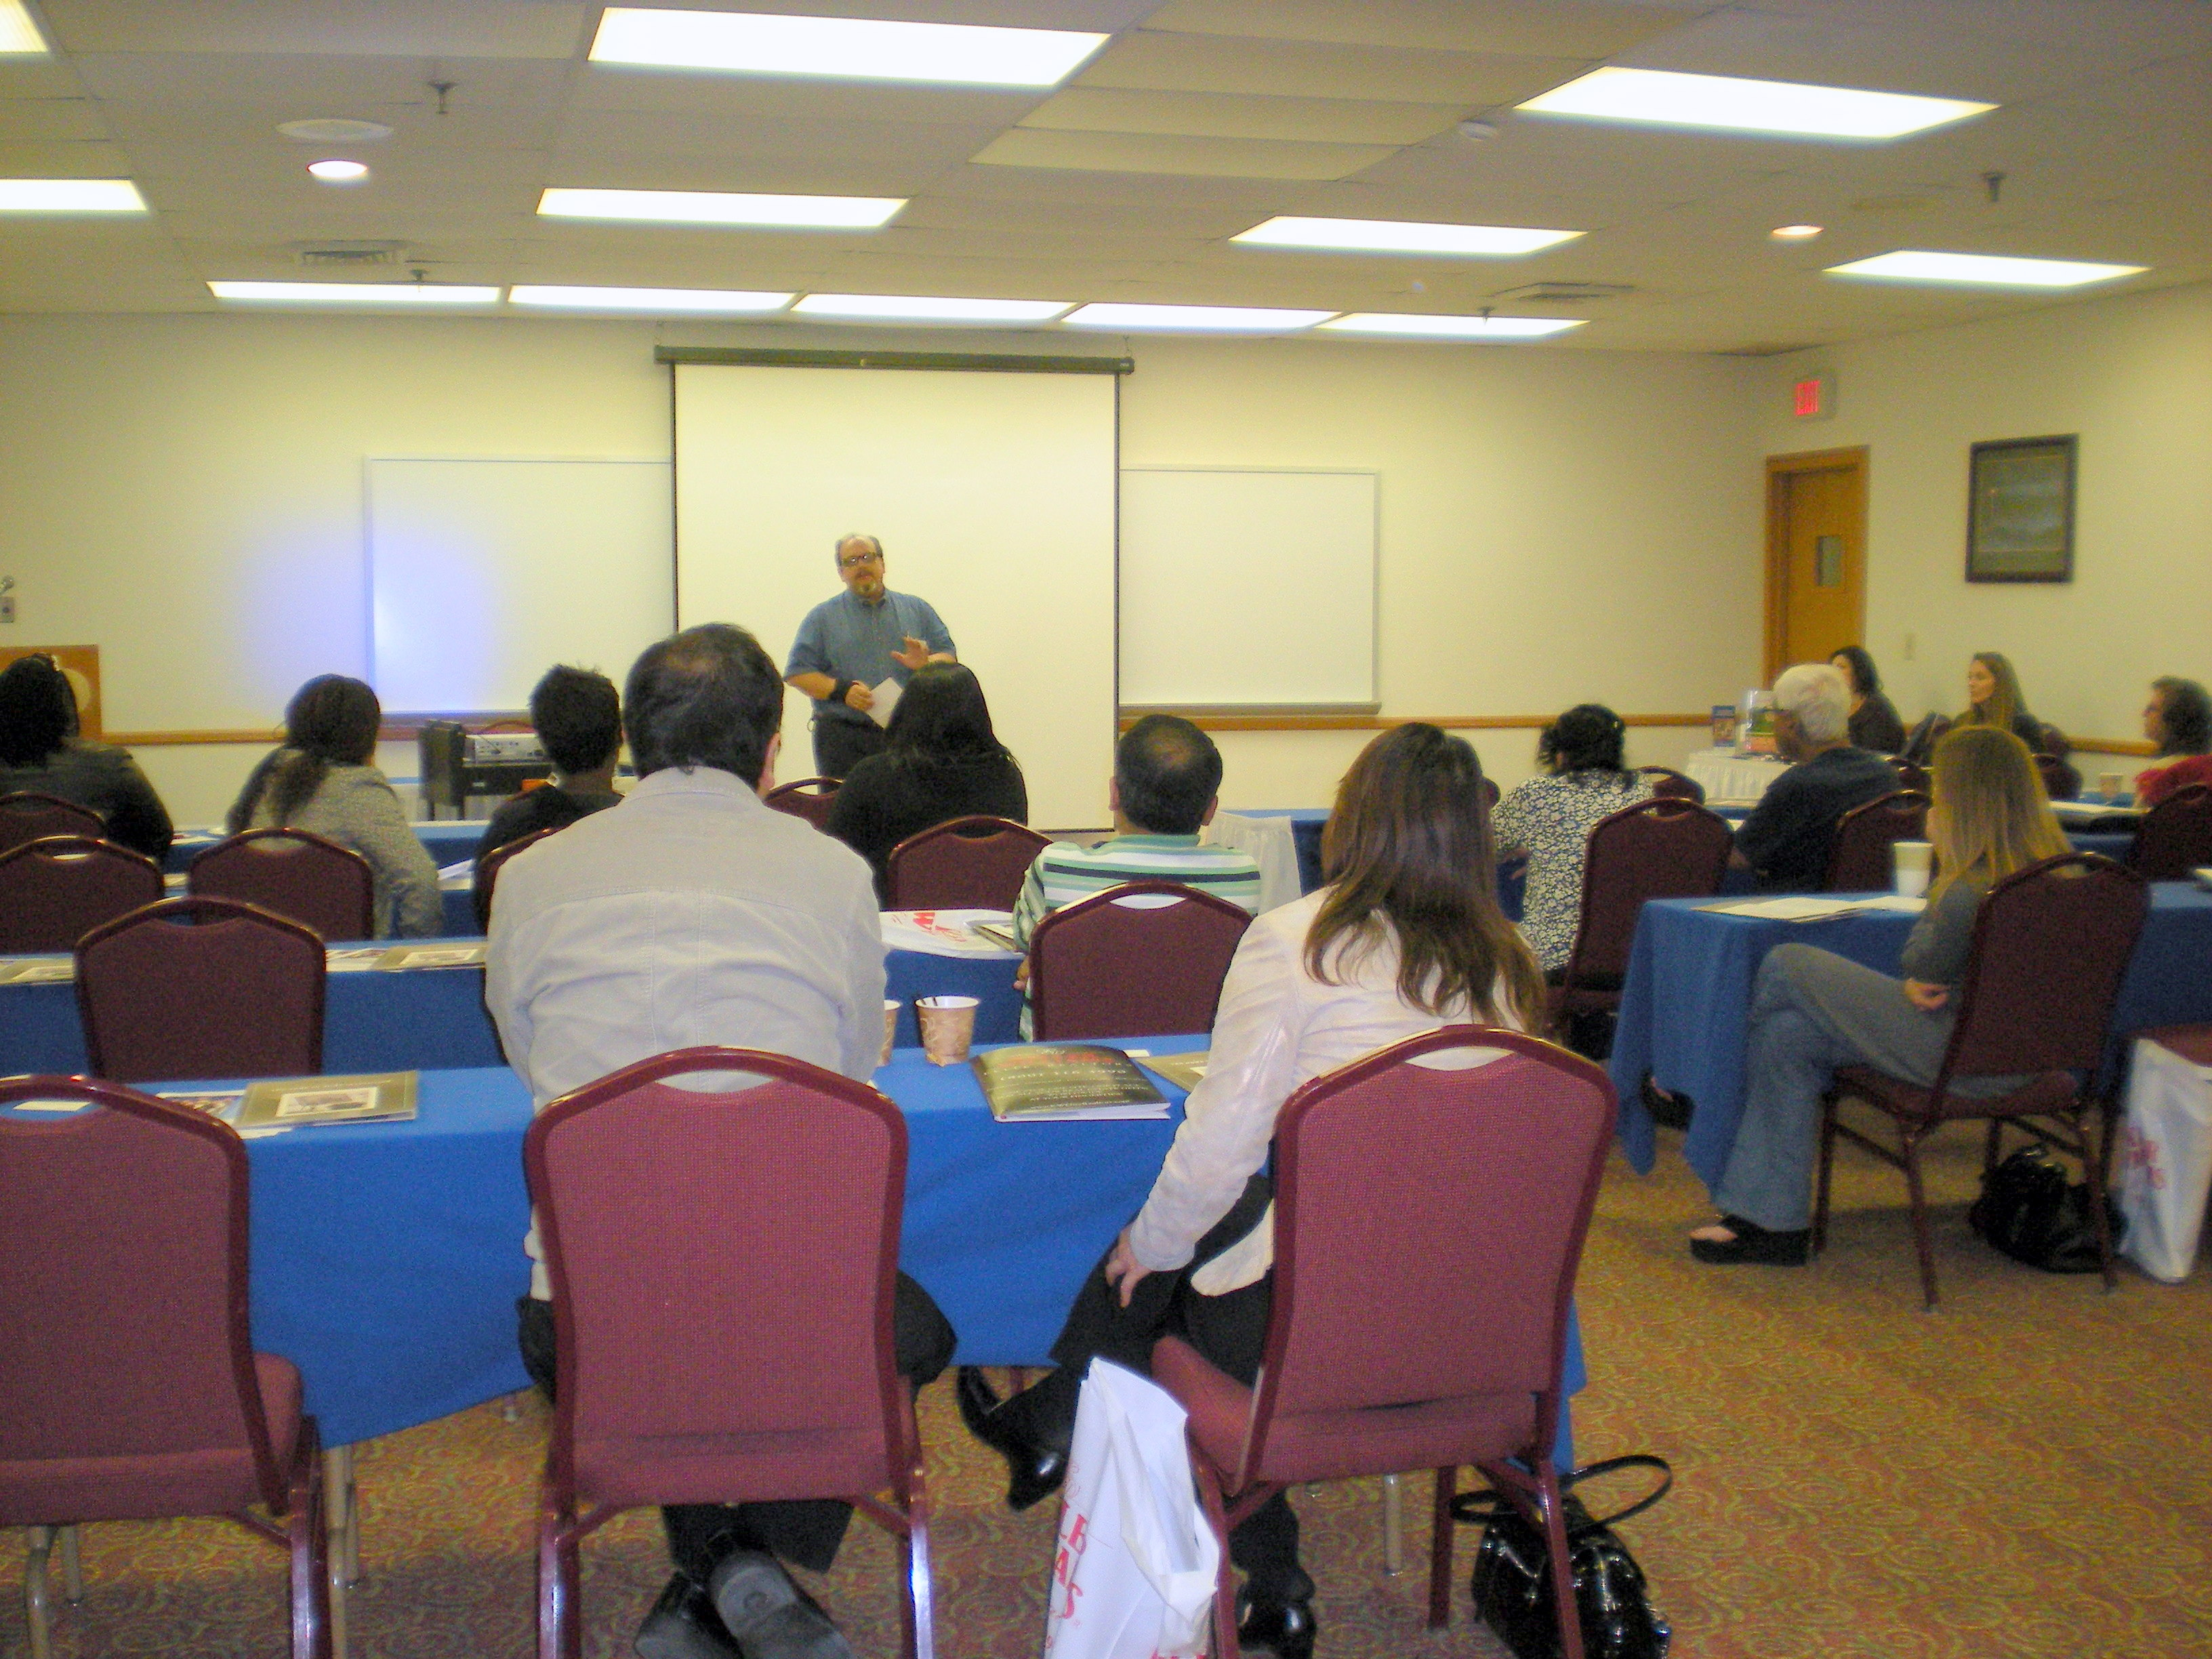 Home seminar at the Days Inn Hotel